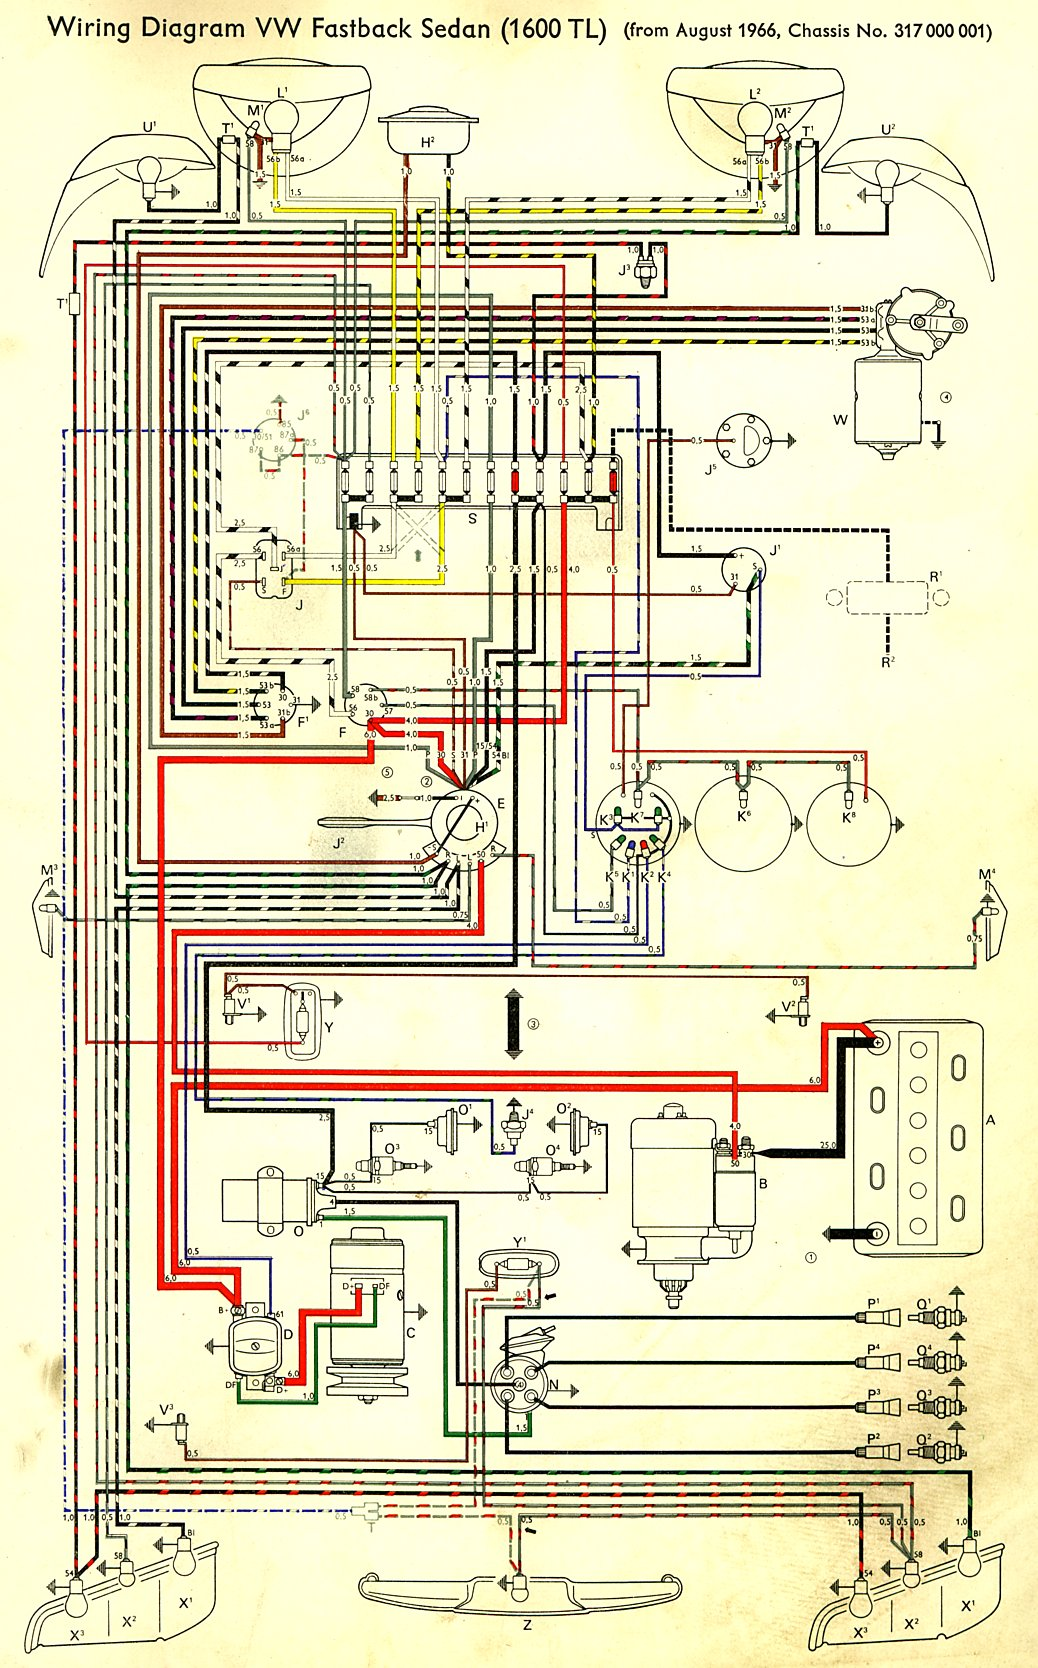 type3_1600TL_67 european wiring diagram hyundai sonata wiring diagram \u2022 free vw wiring diagram symbols at nearapp.co